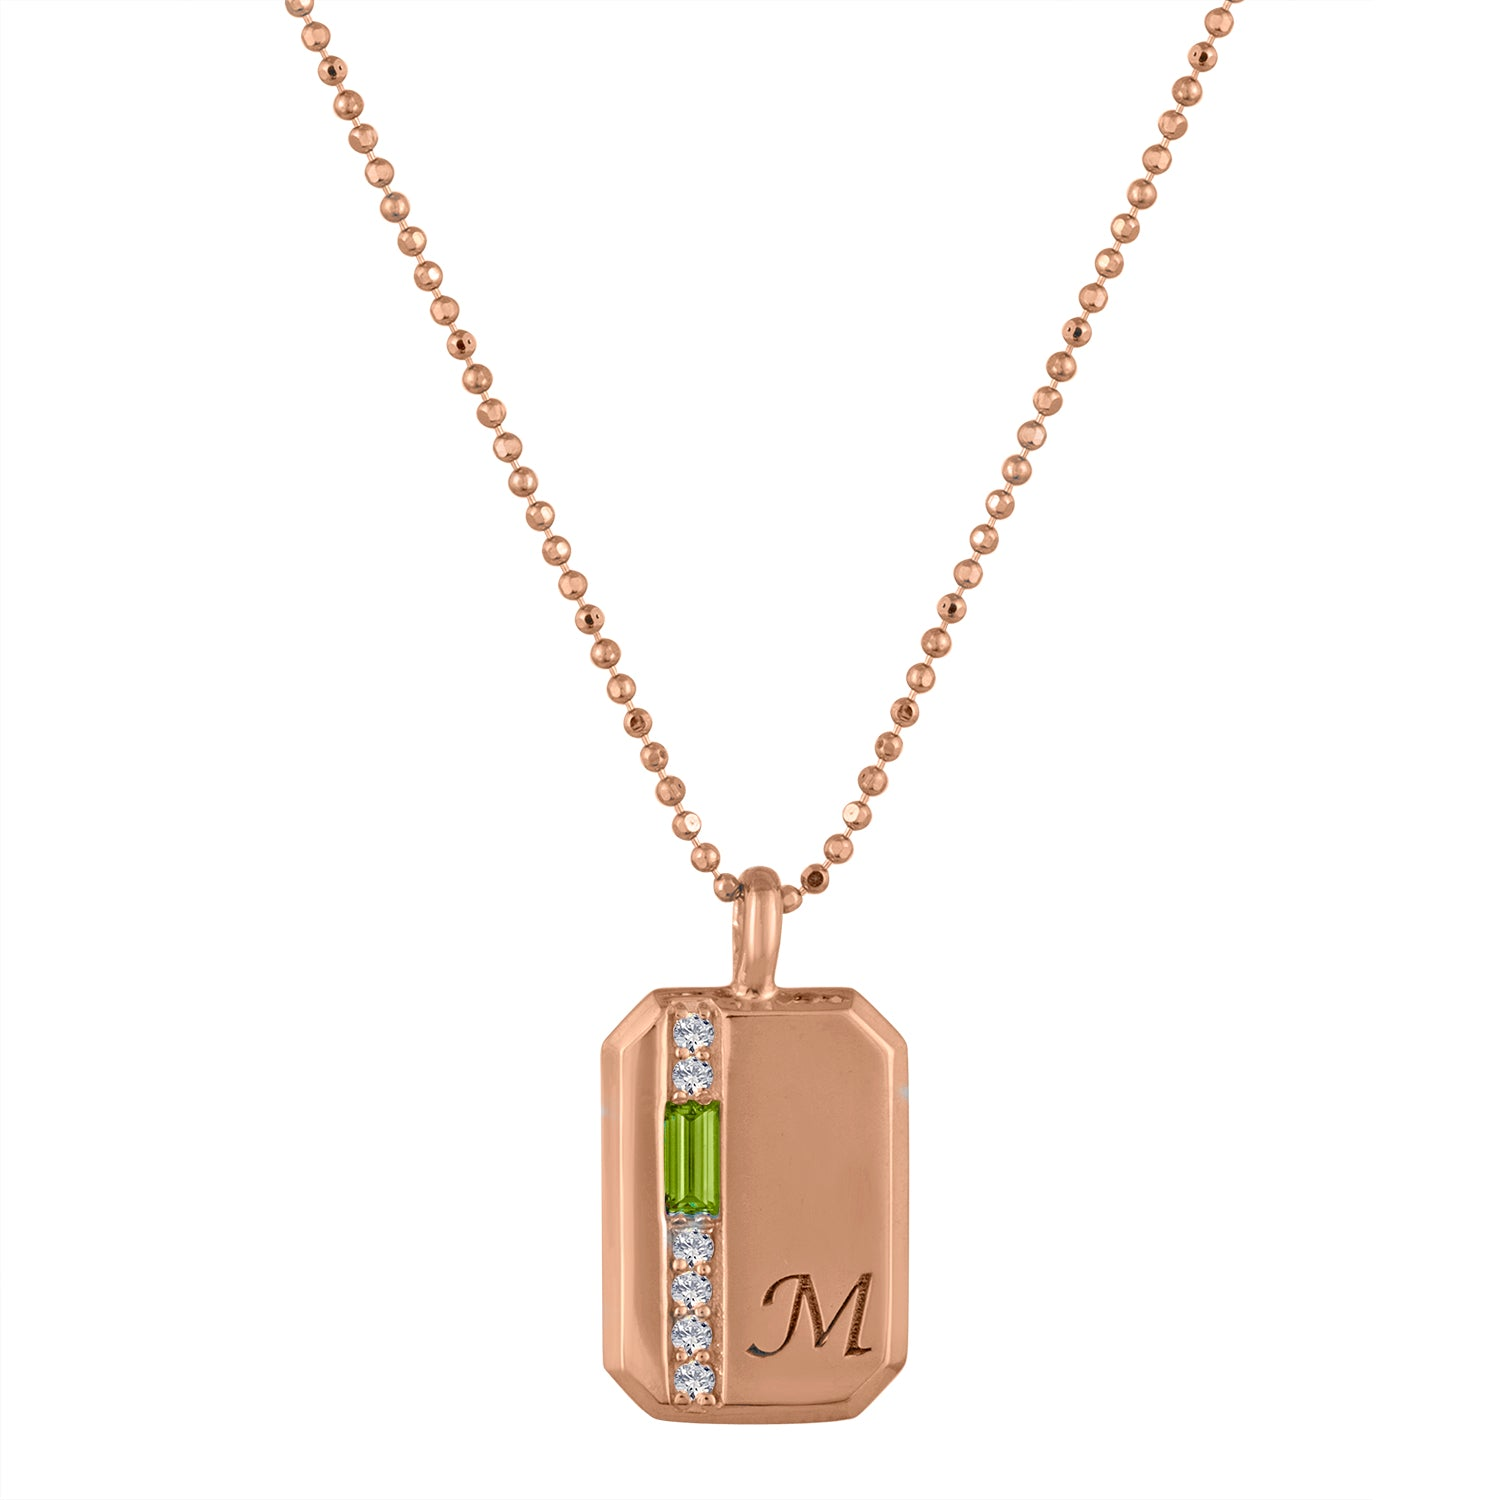 Small rectangular pendant with peridot baguette, 6 diamonds and an initial